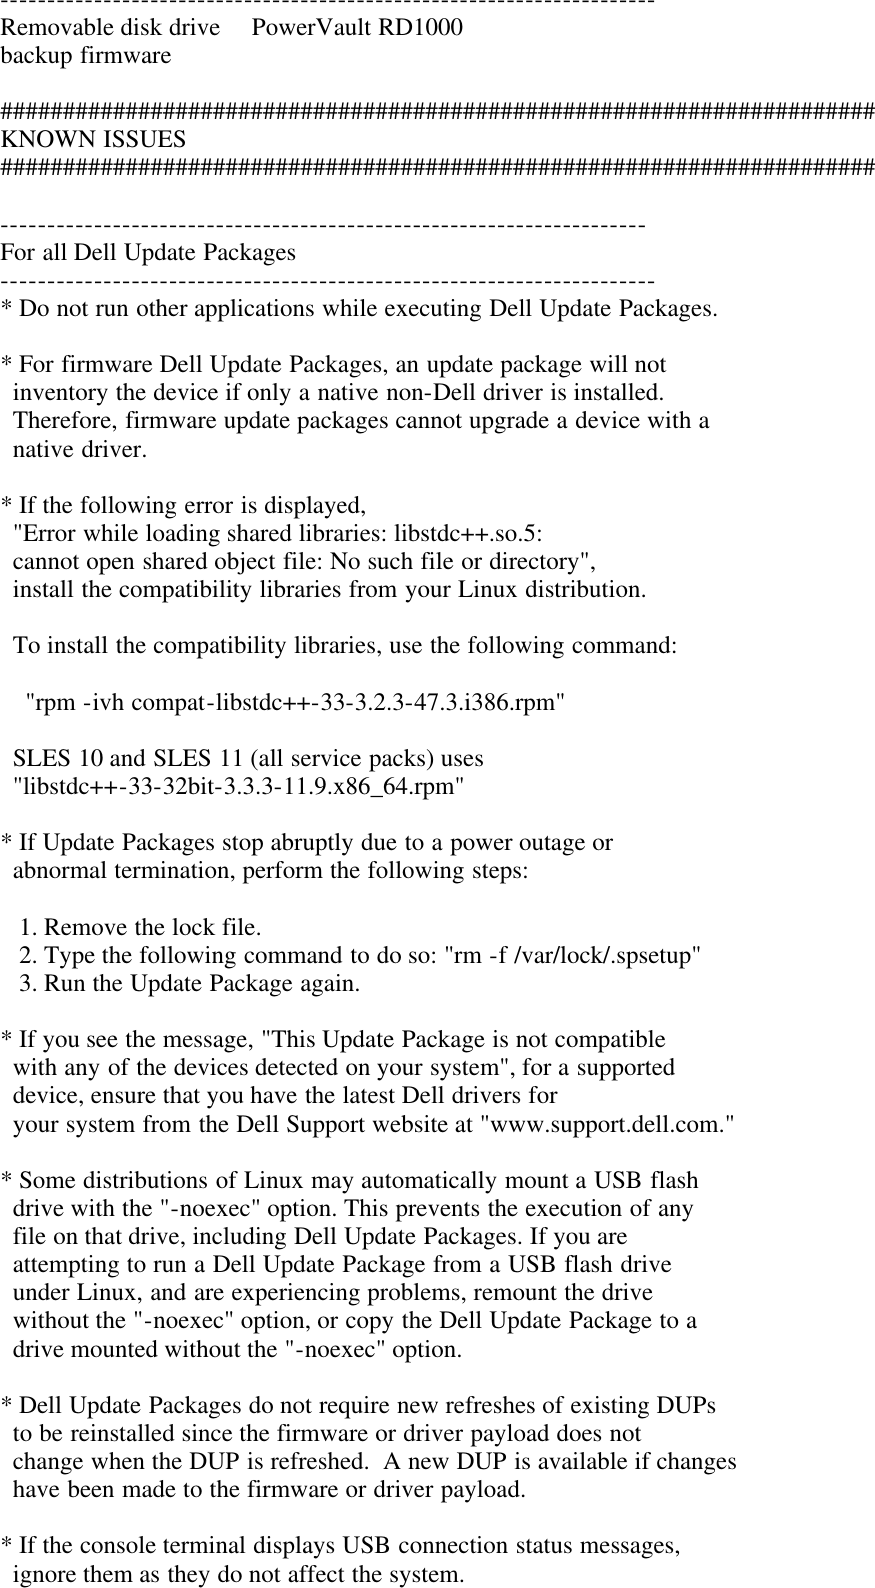 Dell Update Packages Version 6 4 Owners Manual 6 4 Readme For Linux